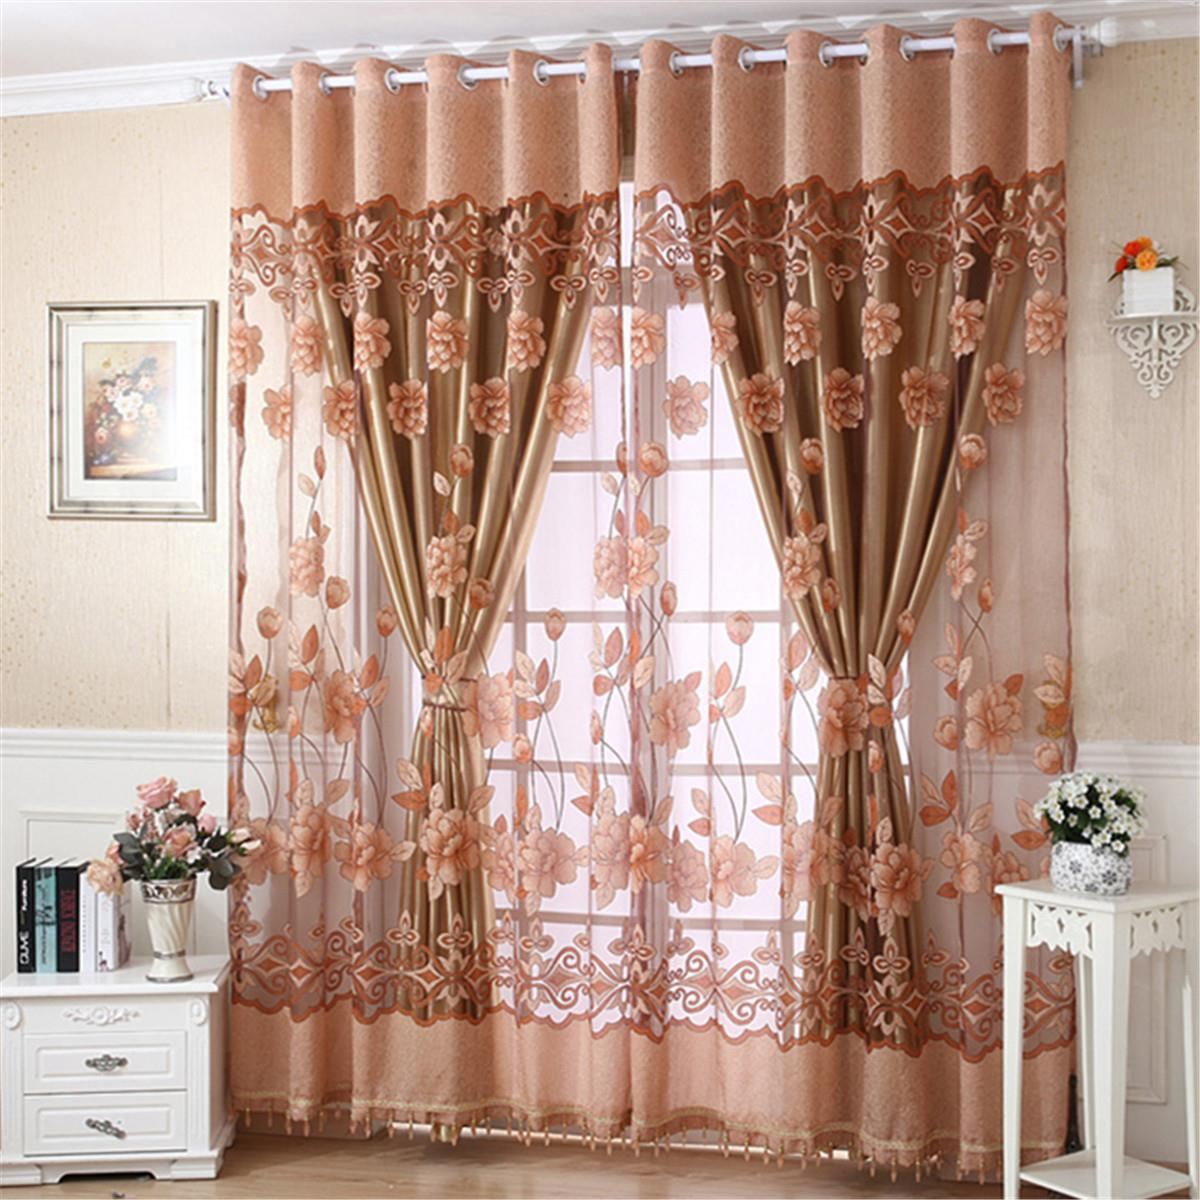 windows burlap bedroom also curtain room including trends of living design window for collection valance images elegant kitchen interior inspirations ideas valances